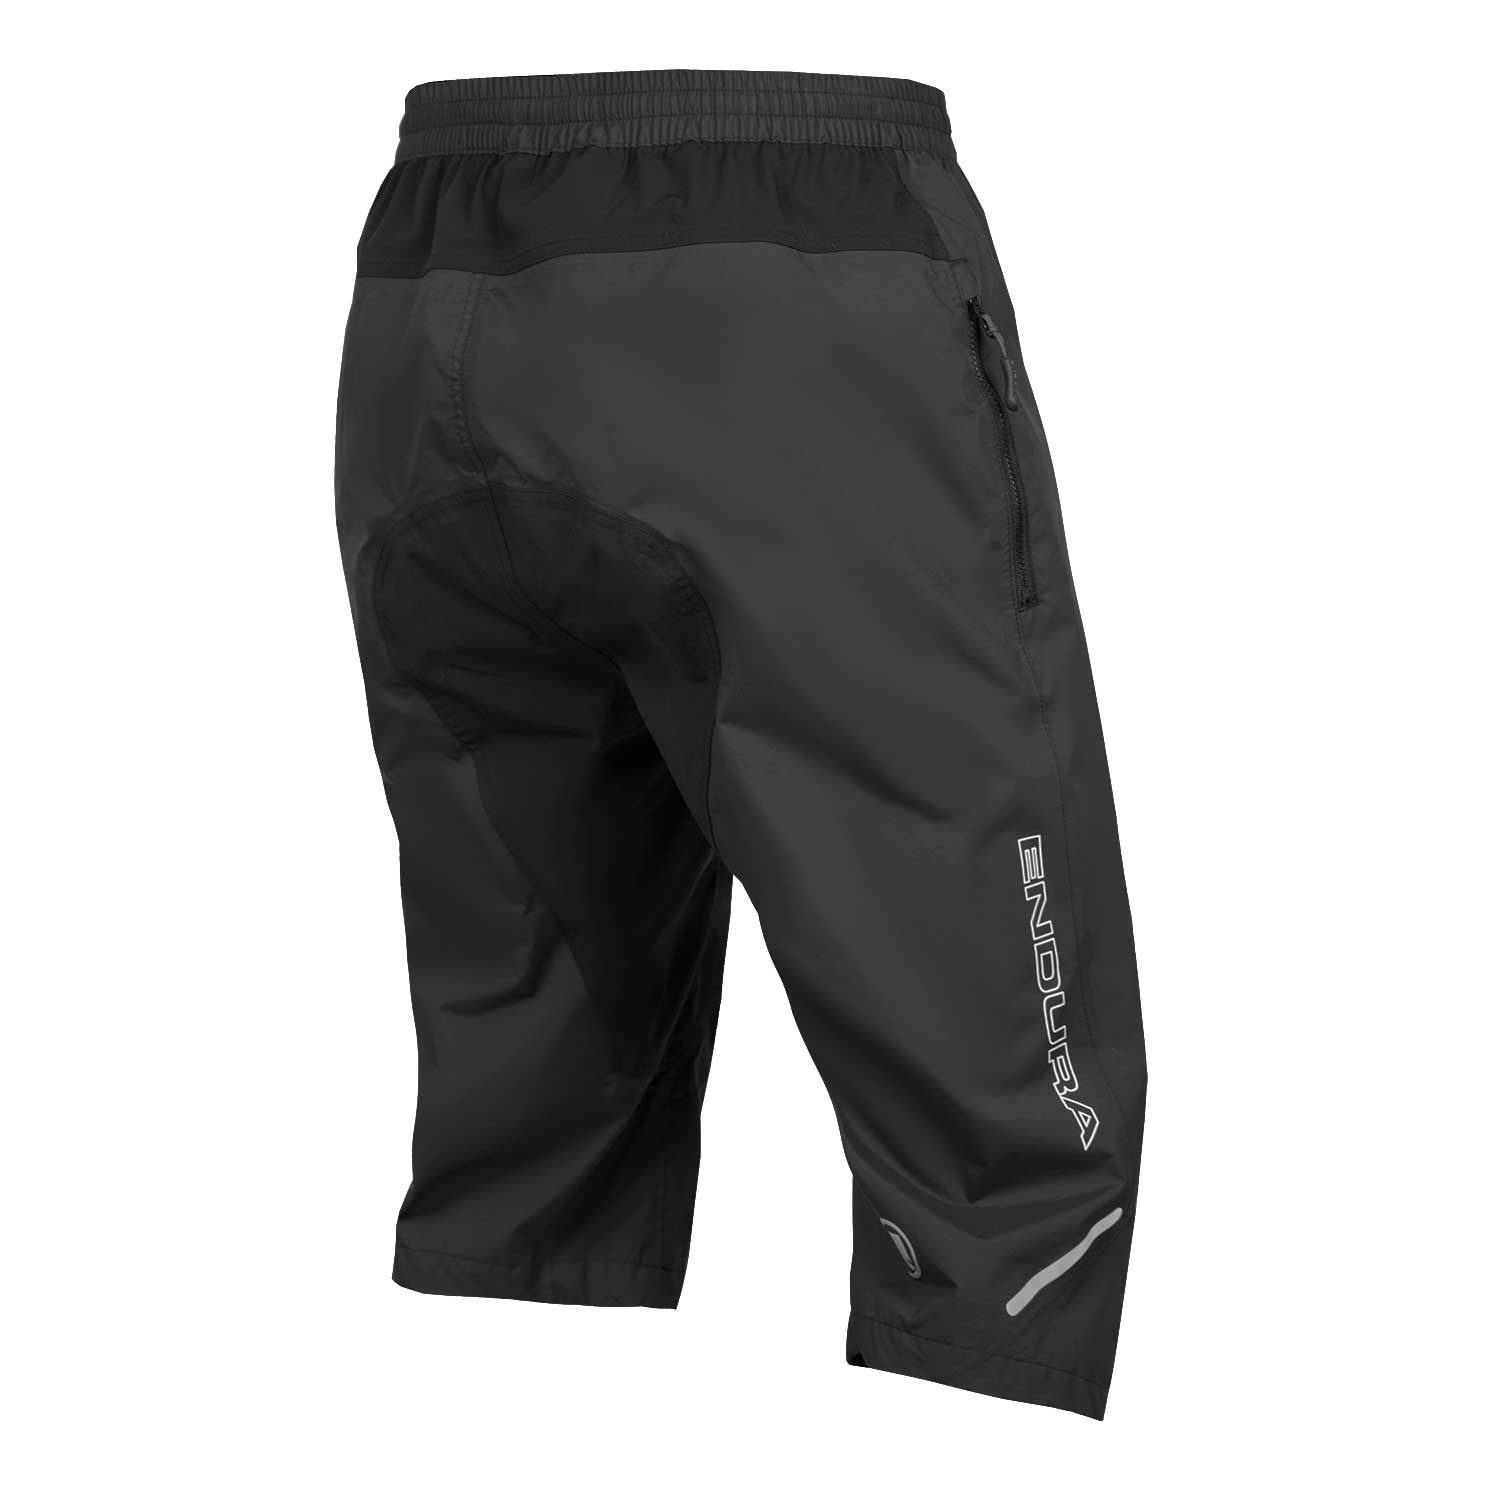 Hummvee Waterproof Short Black